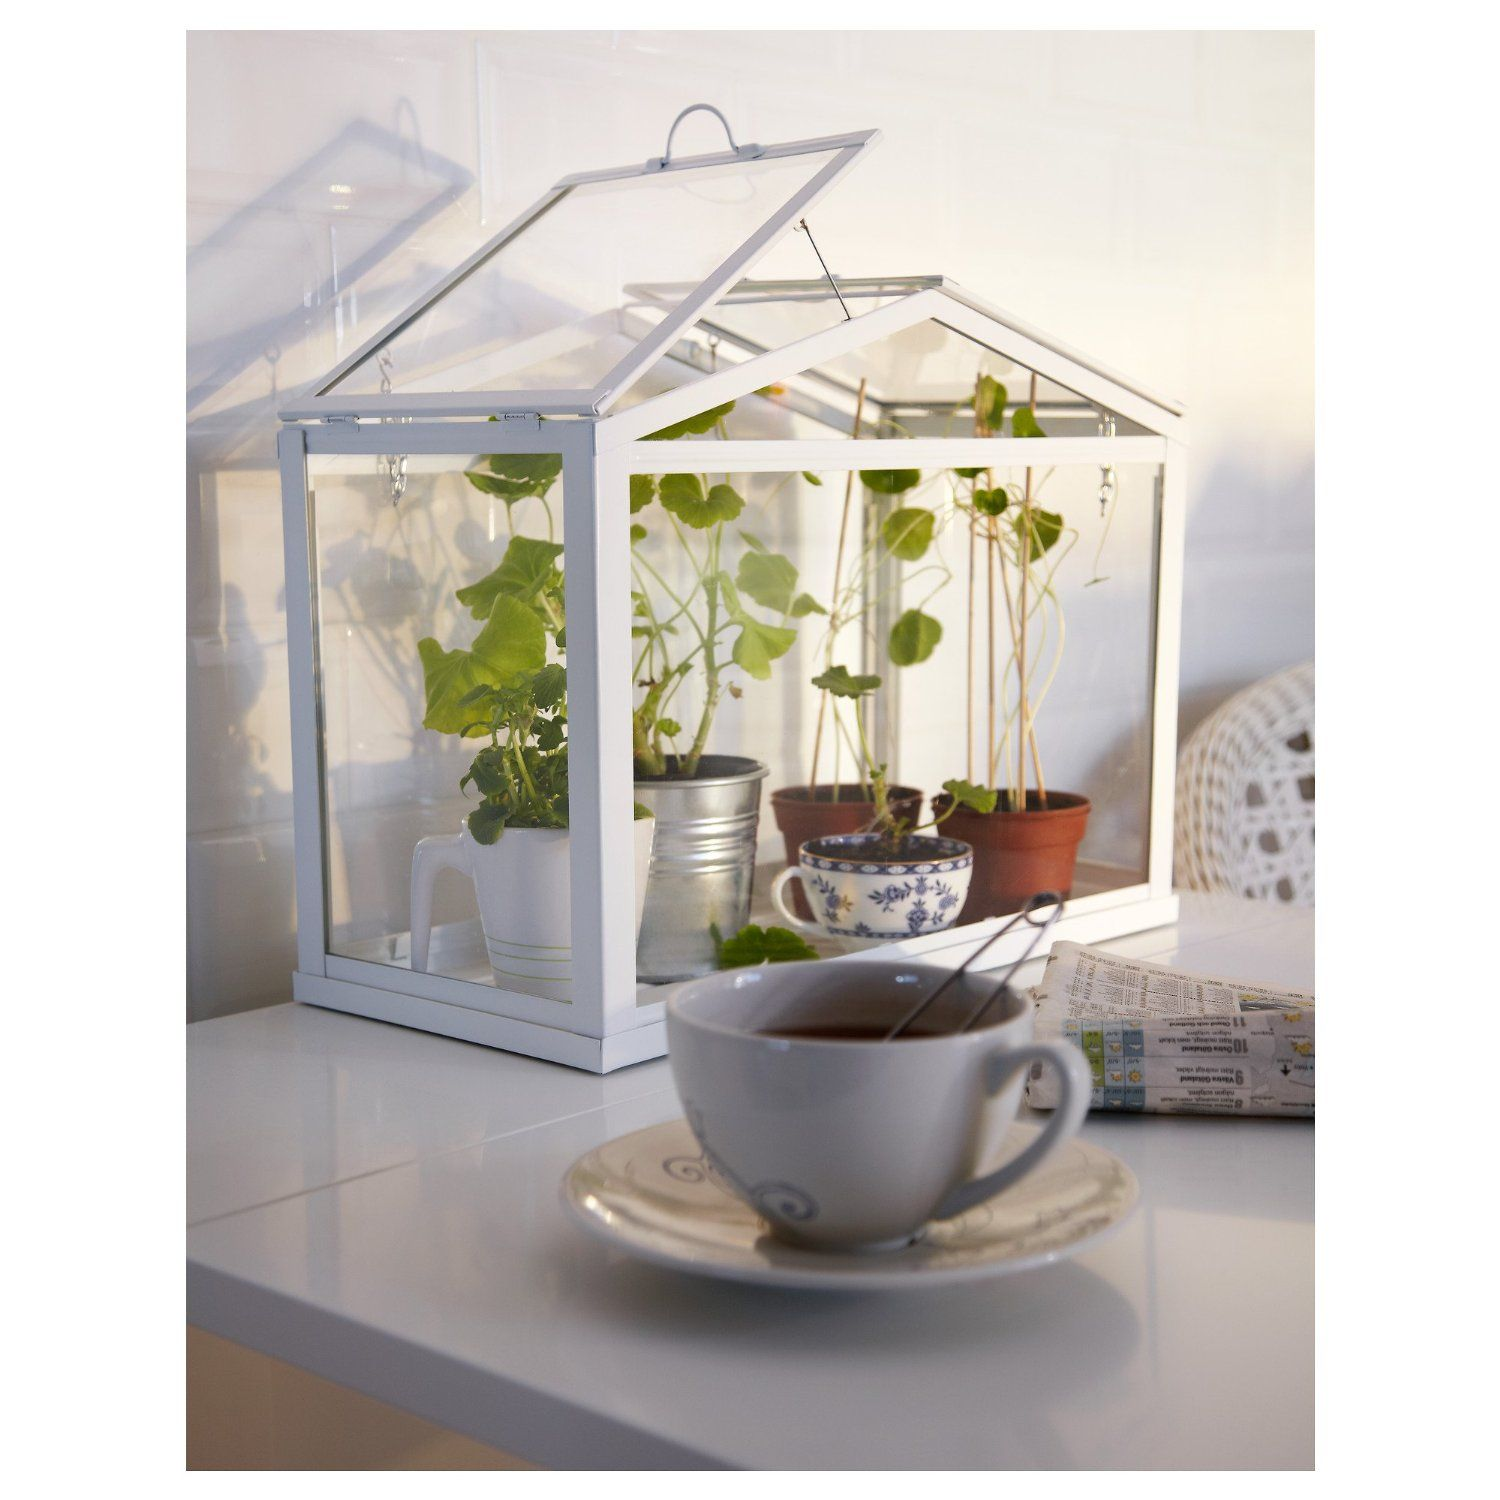 Ikea Indoor Garden: Amazon.com : Ikea Greenhouse, Indoor/outdoor, White